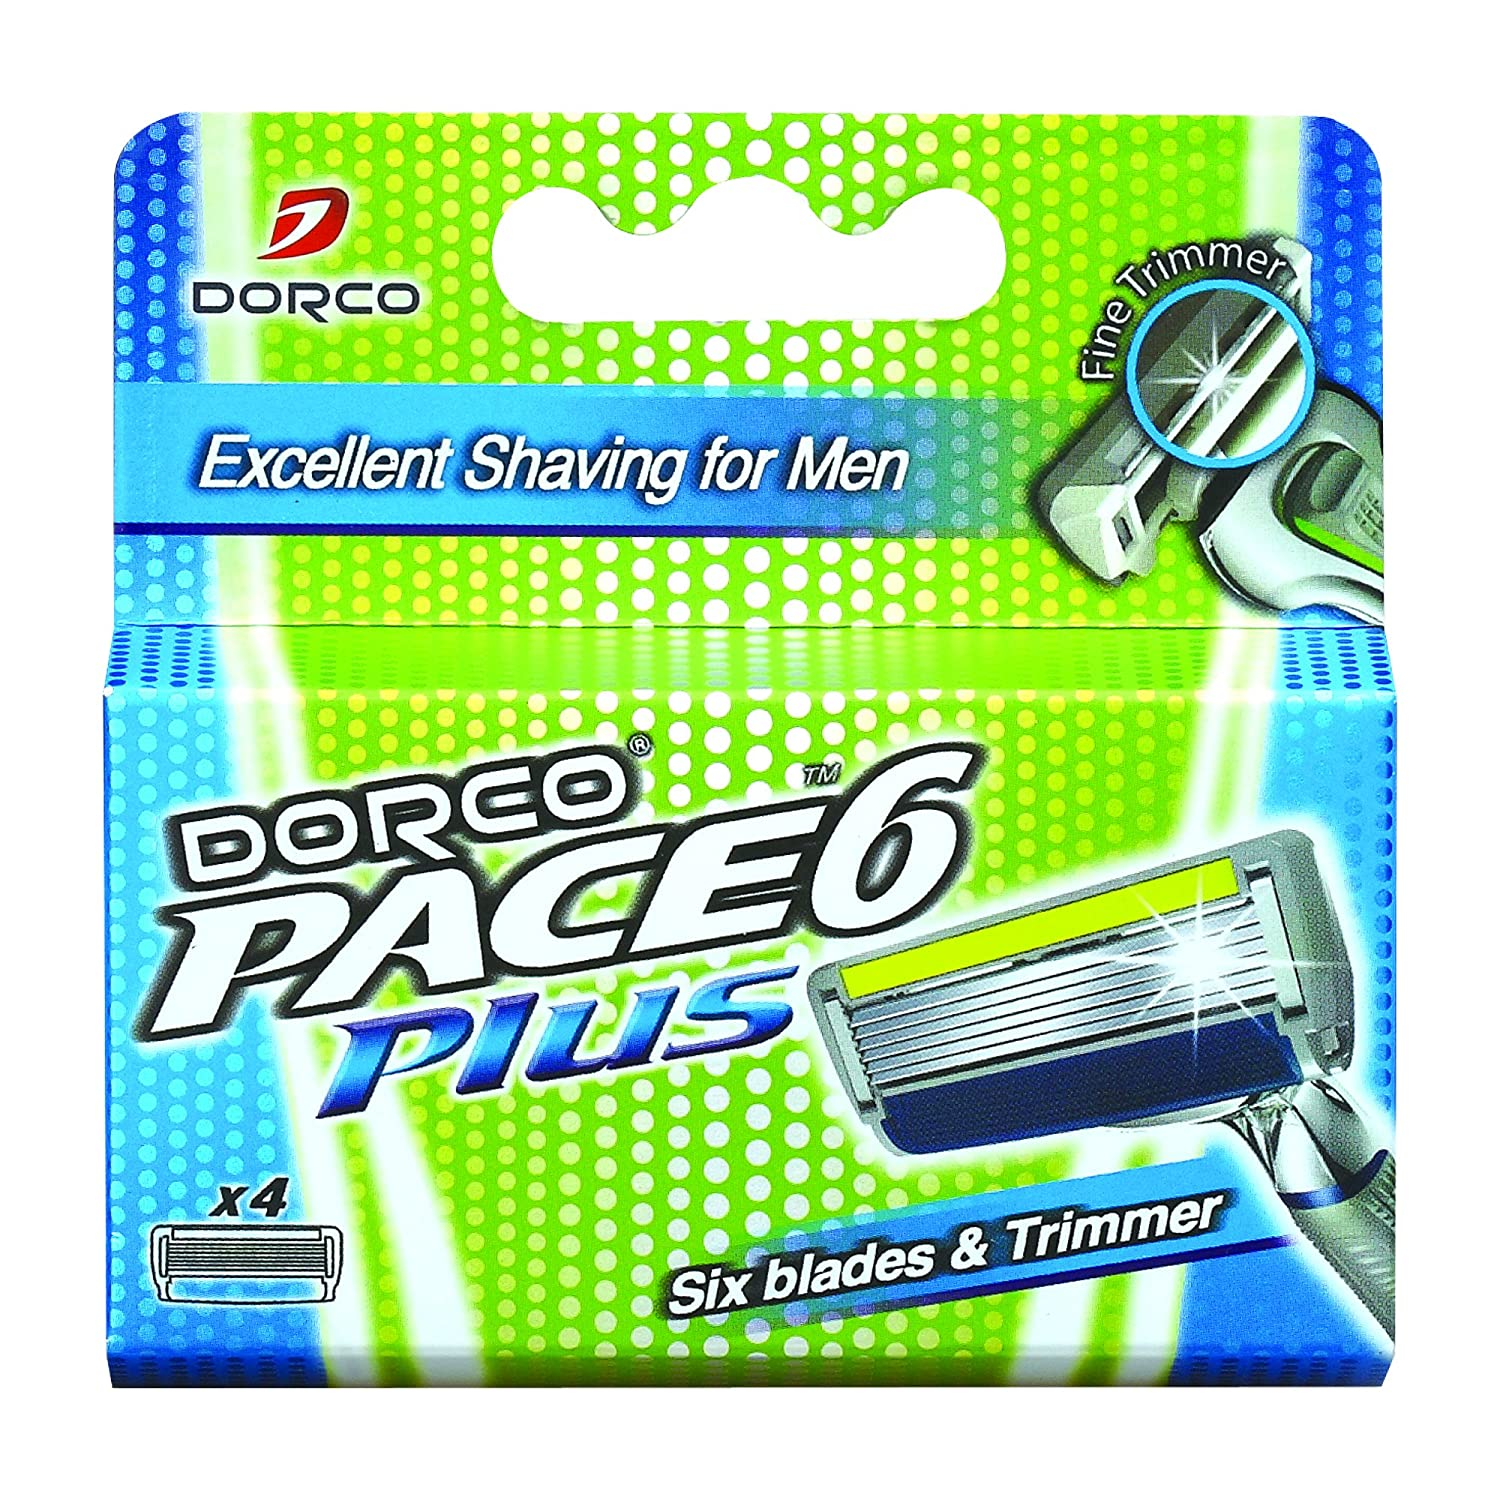 Amazon.com: 6 Blade with Trimmer Razor System for Men Cartridges (Dorco Pace)(SXA5040): Health & Personal Care